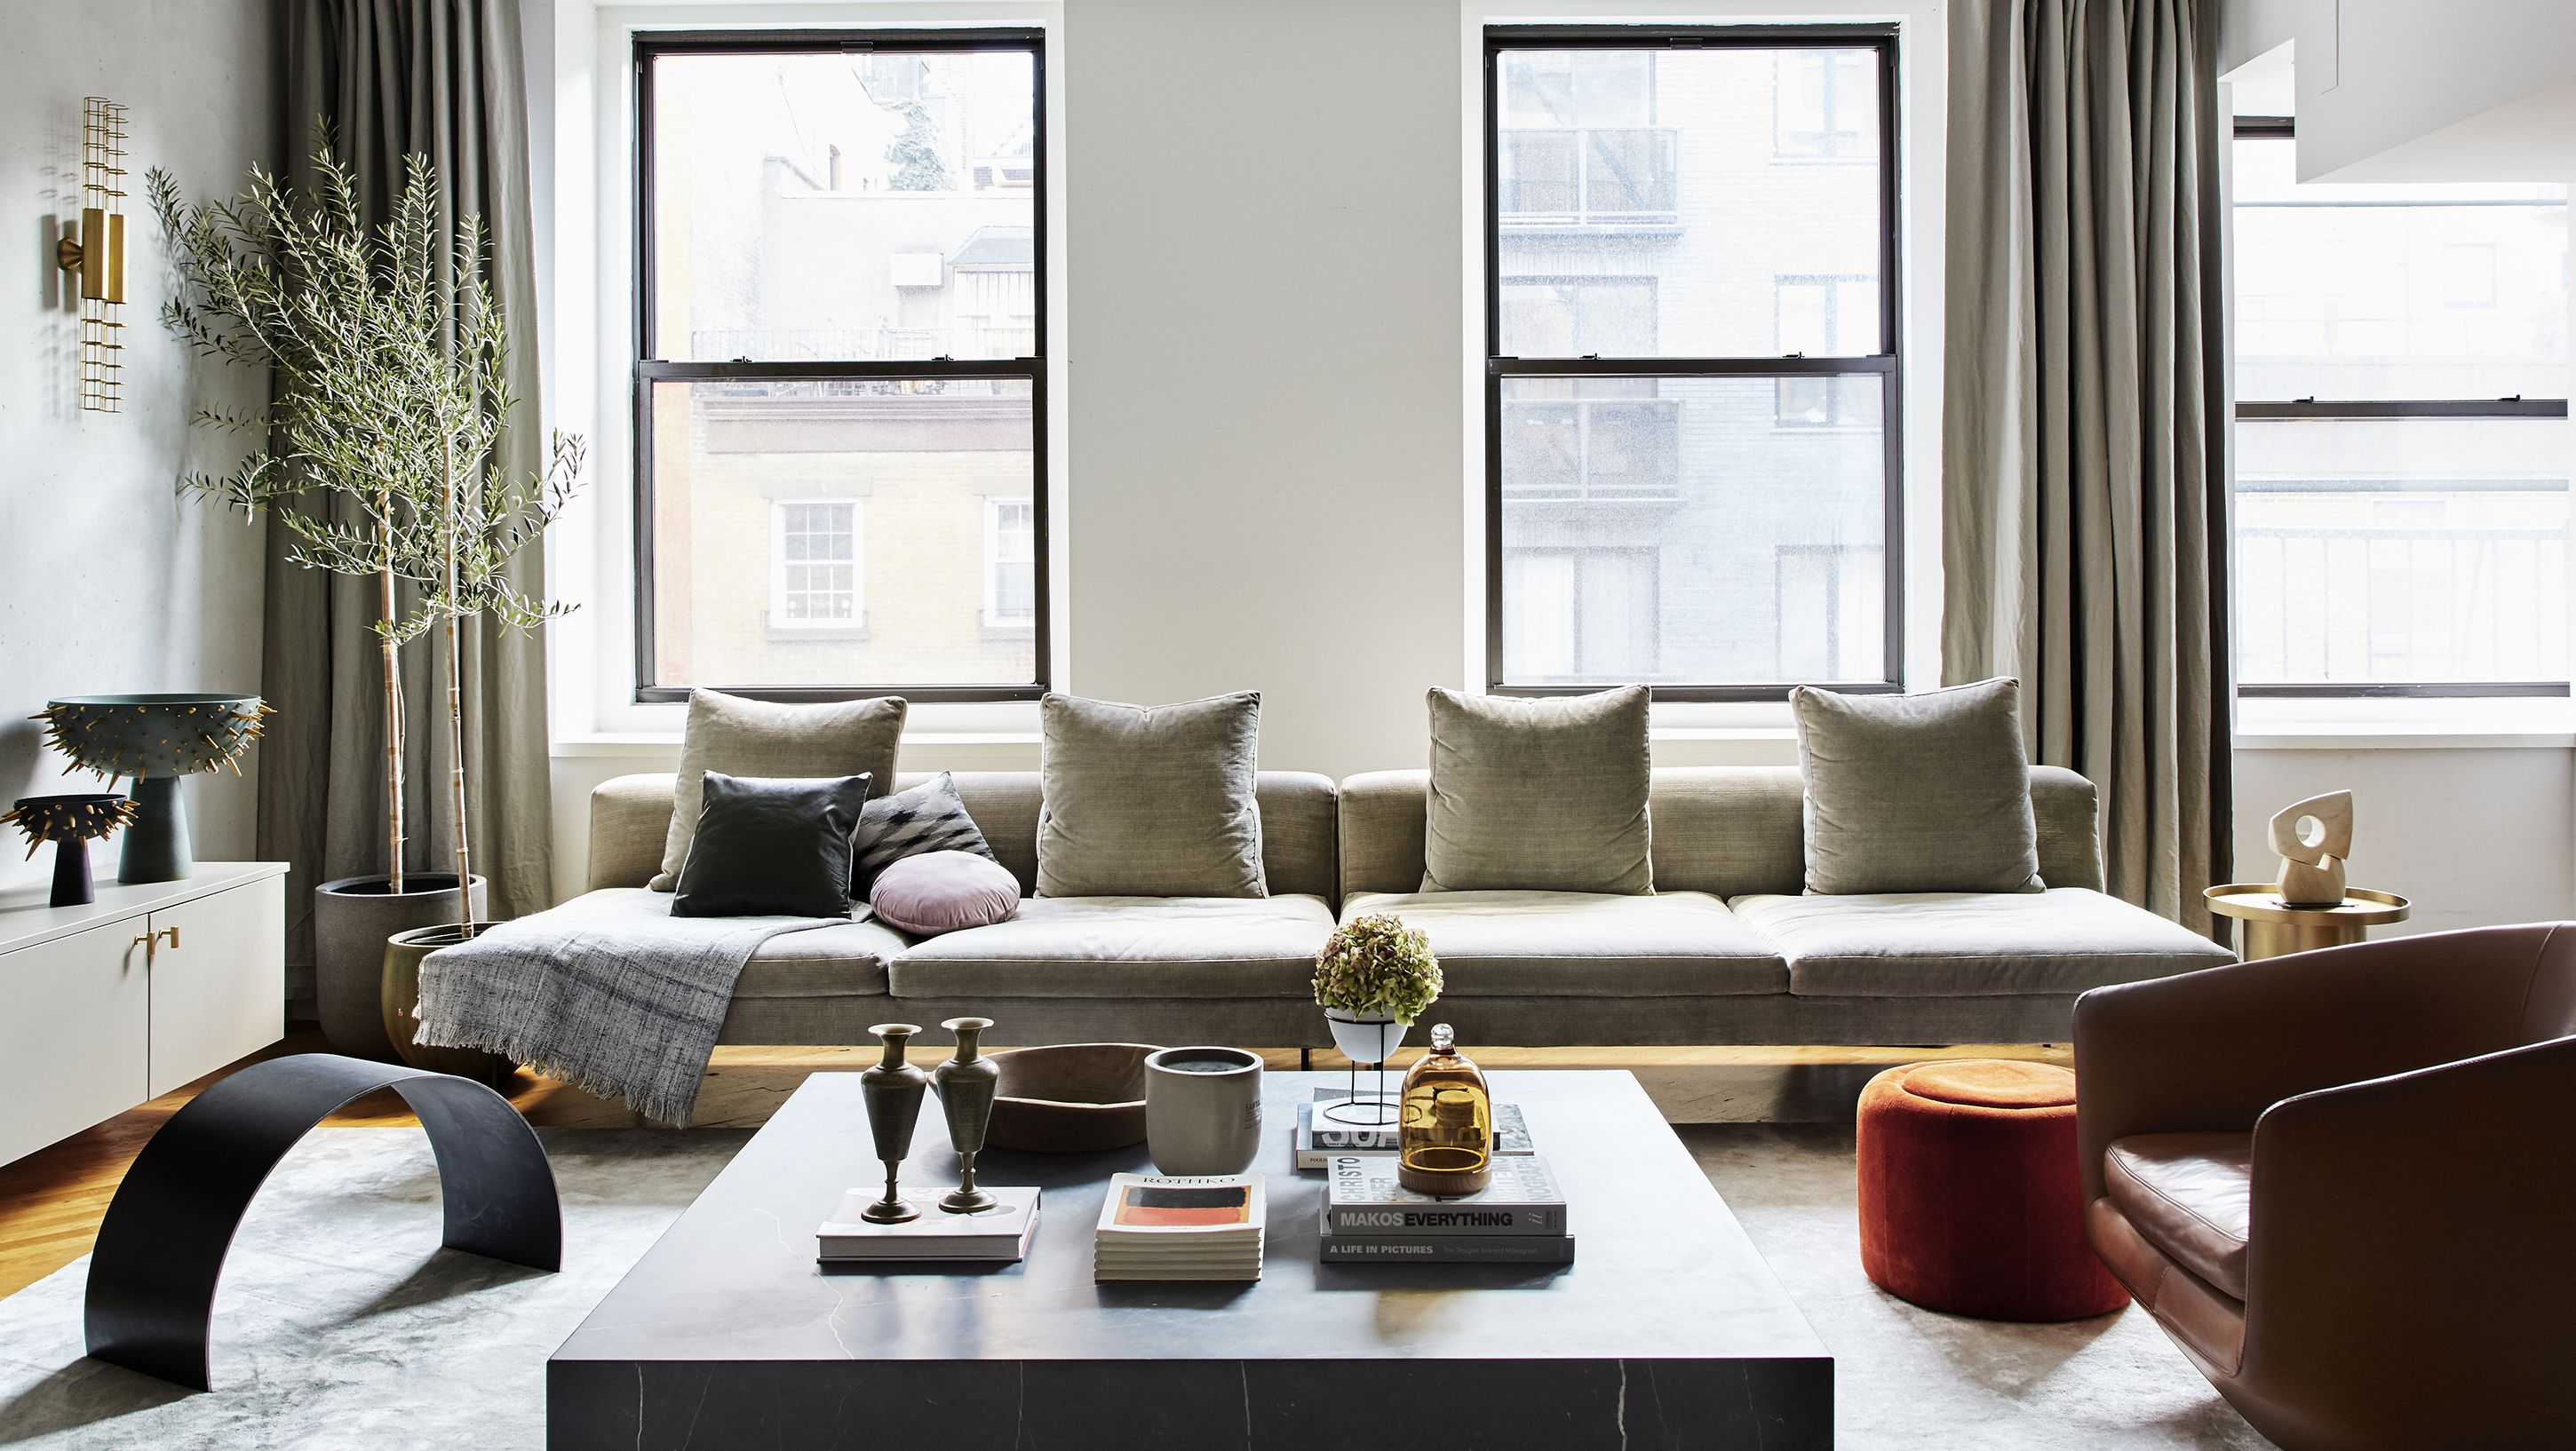 House Tour: How One New Yorker Achieved Timeless Style In A Rented Loft